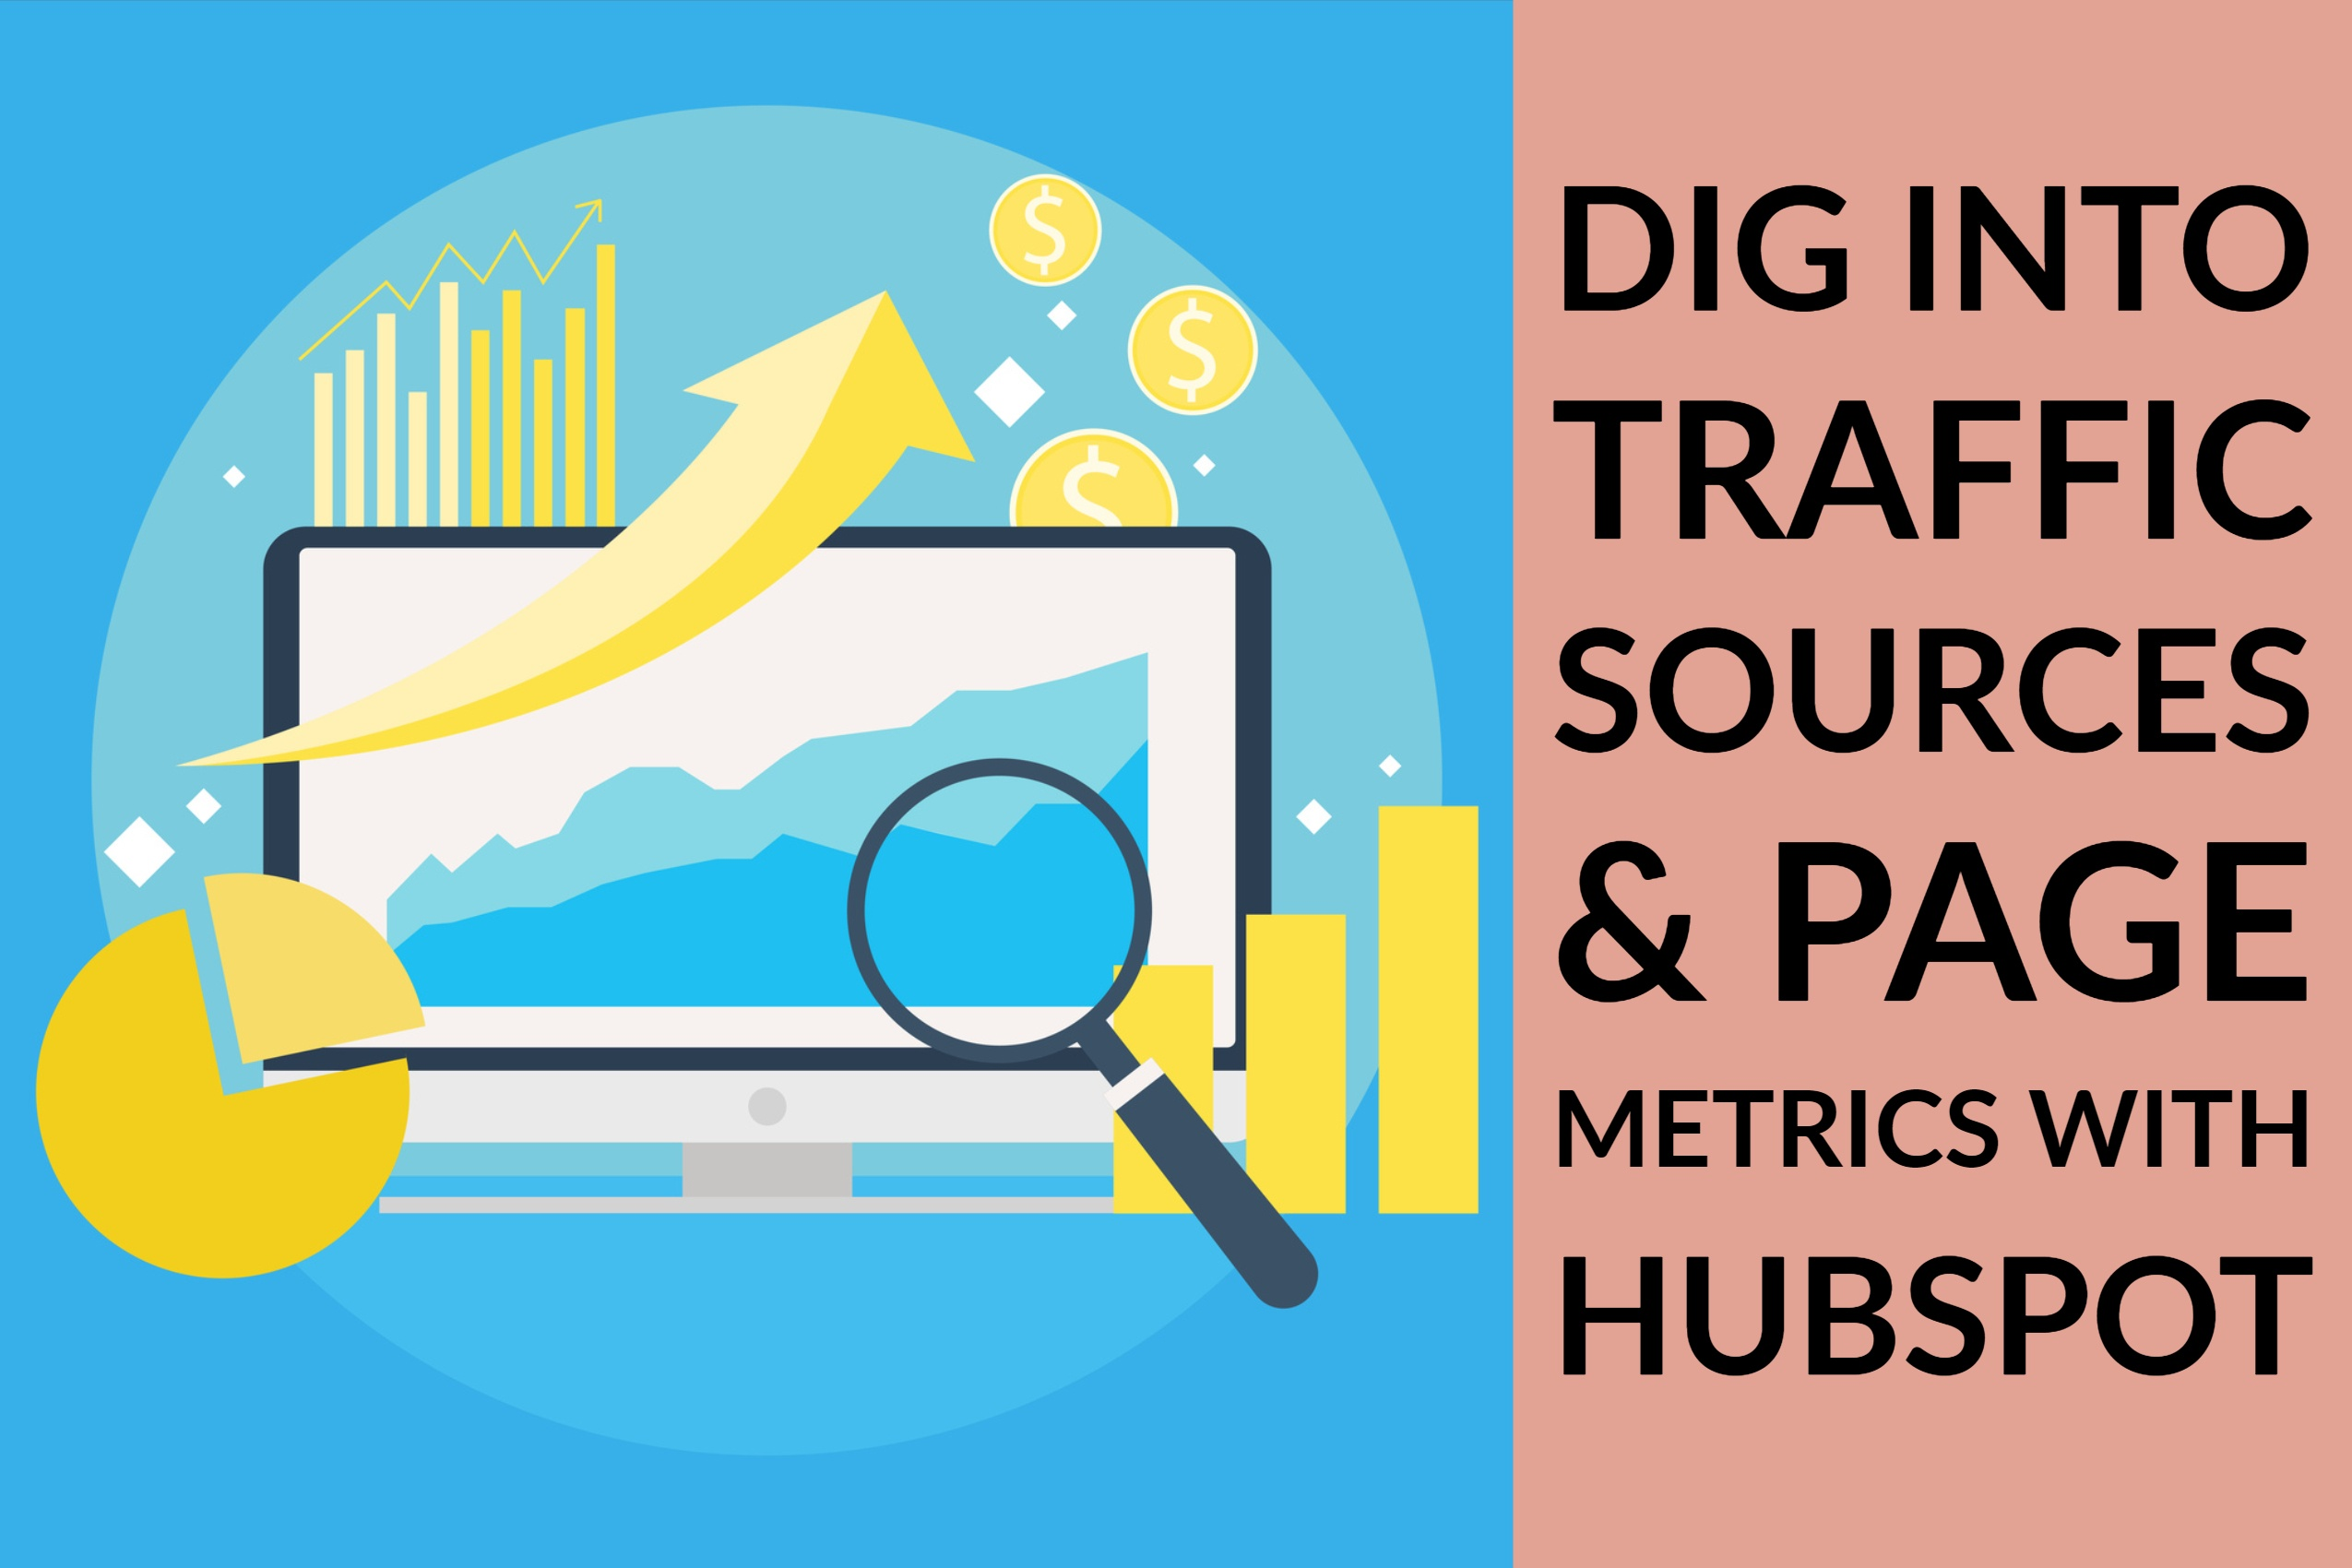 Dig Into Traffic Sources & Page Metrics With HubSpot